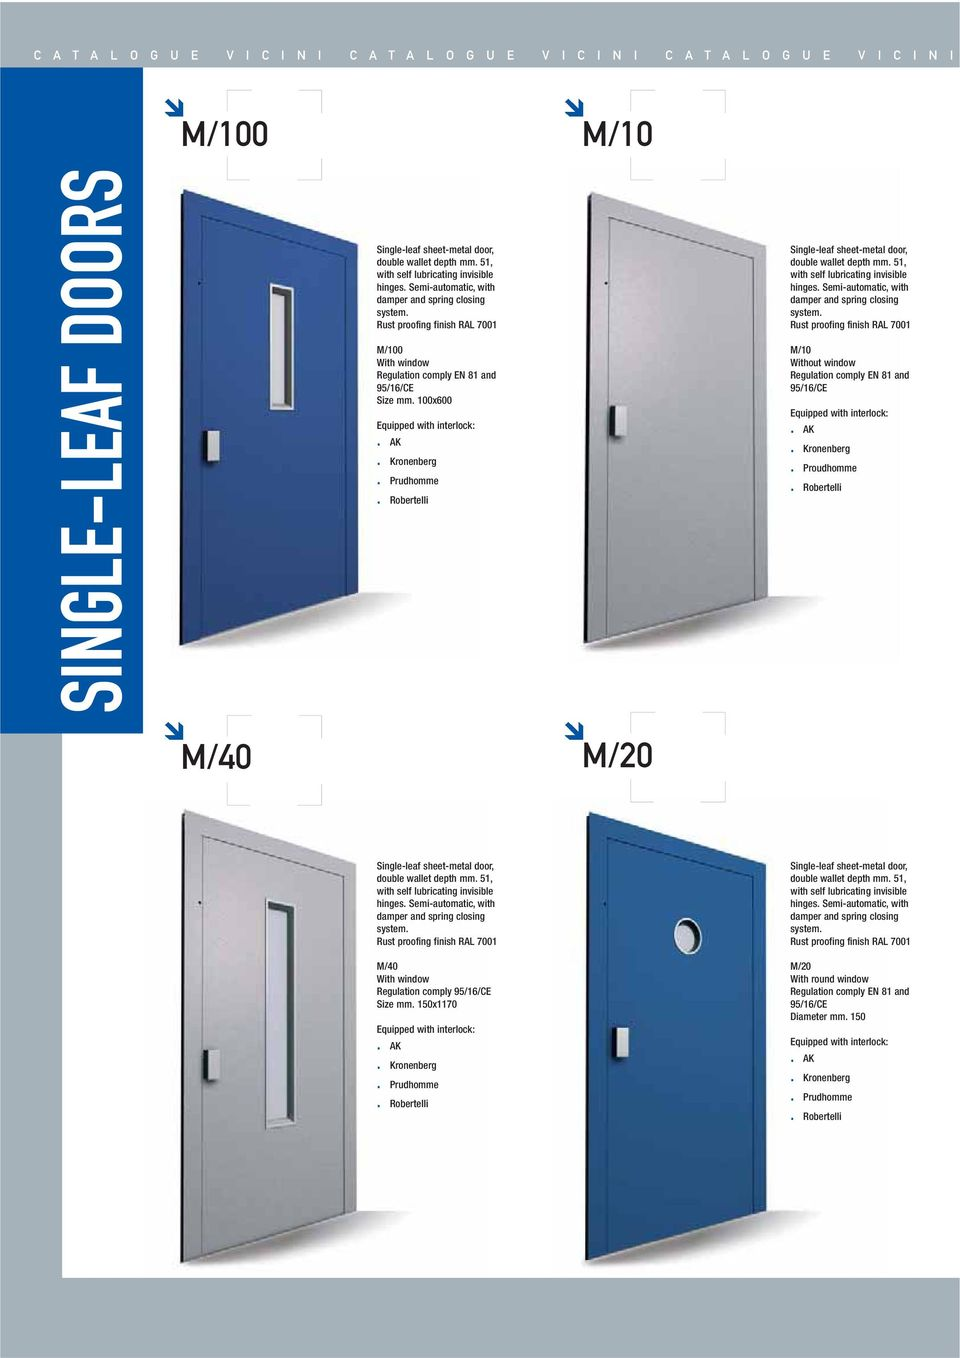 100x600 Equipped with interlock:. AK. Kronenberg. Prudhomme. Robertelli Single-leaf sheet-metal door, double wallet depth mm. 51, with self lubricating invisible hinges.